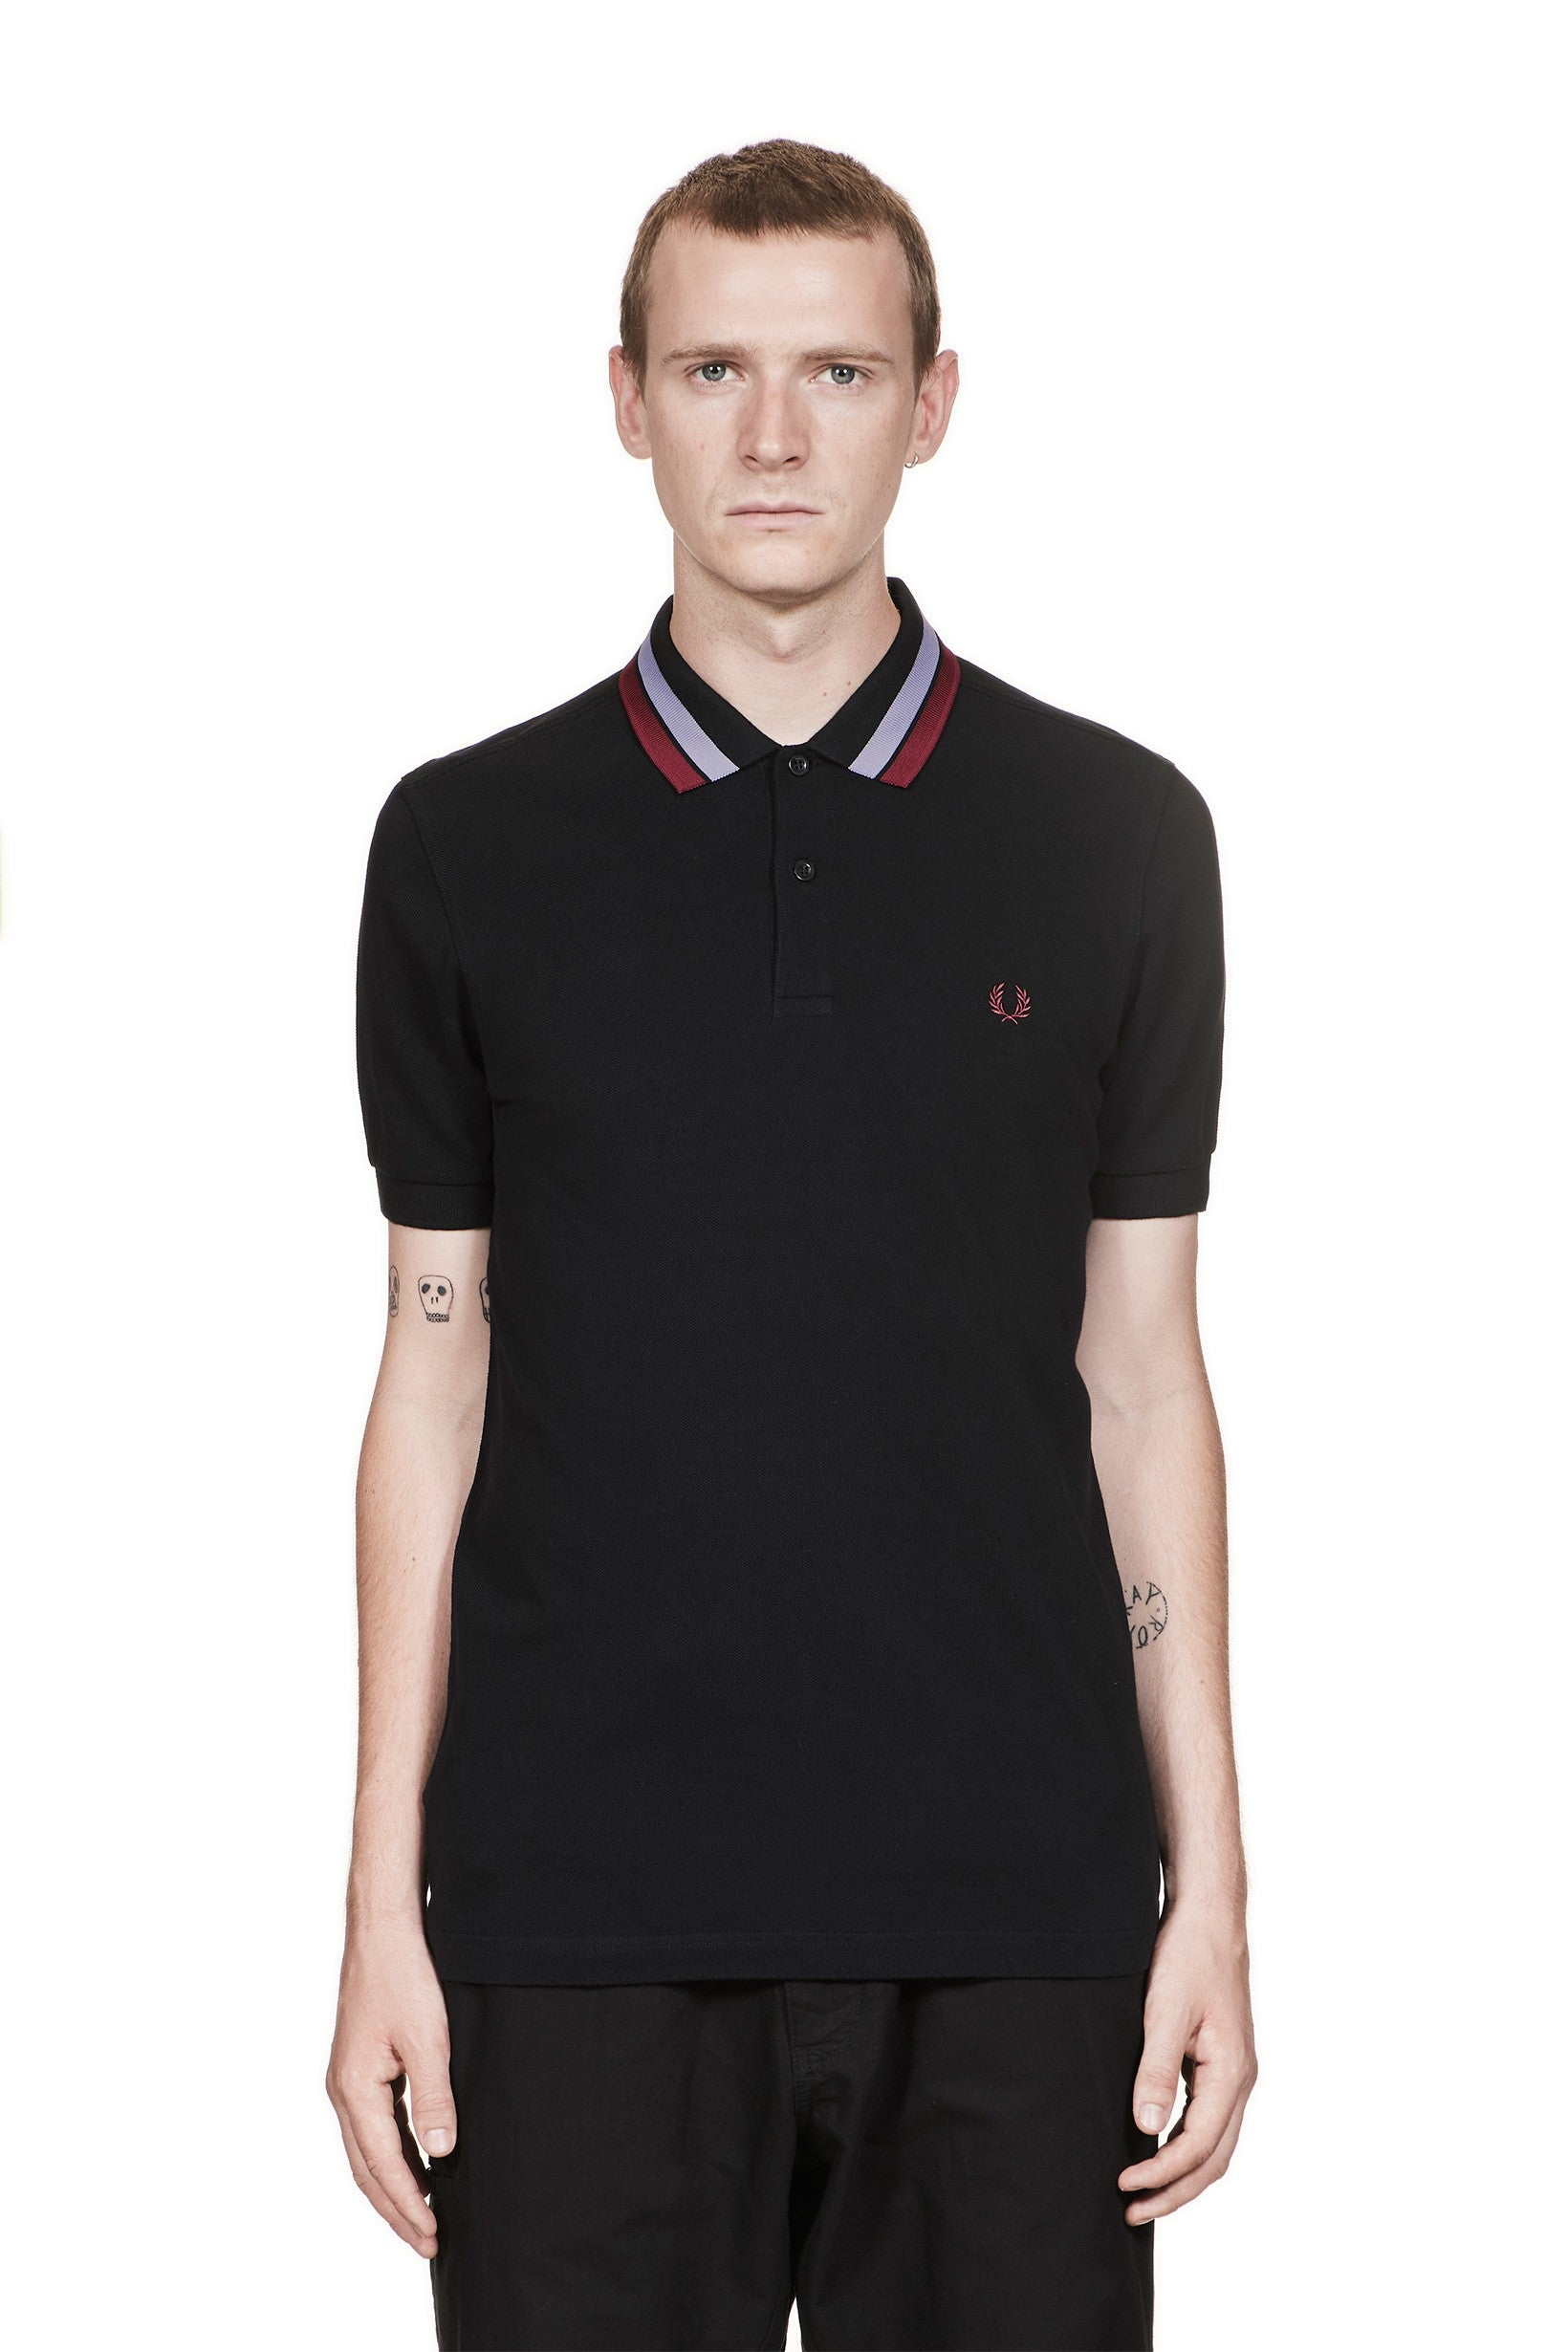 FRED PERRY M4528 BOLD TIPPED PIQUE SHIRT IRIS LEAF